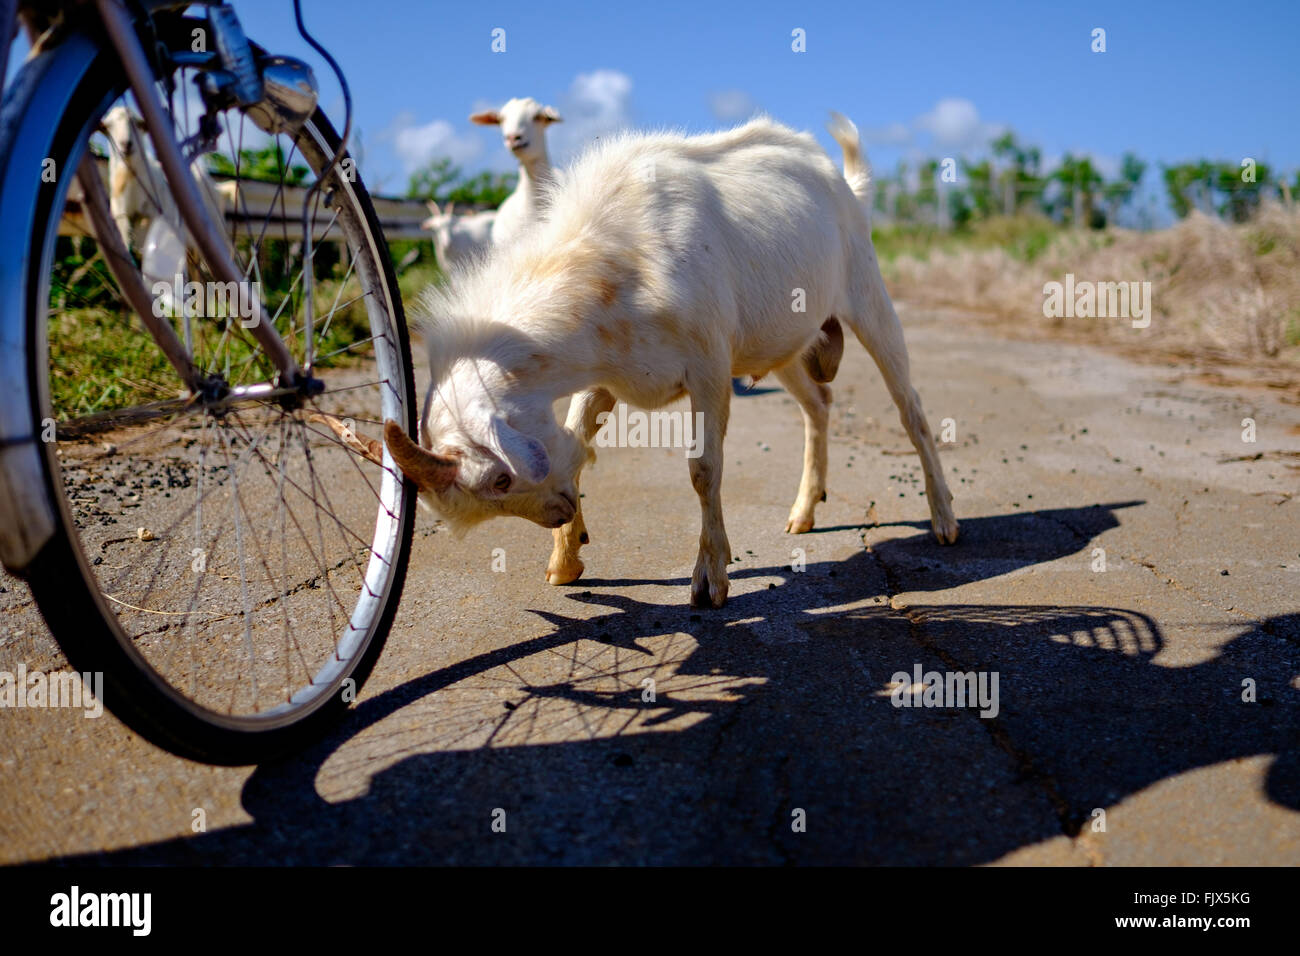 Goat Hitting Bicycle On Street - Stock Image